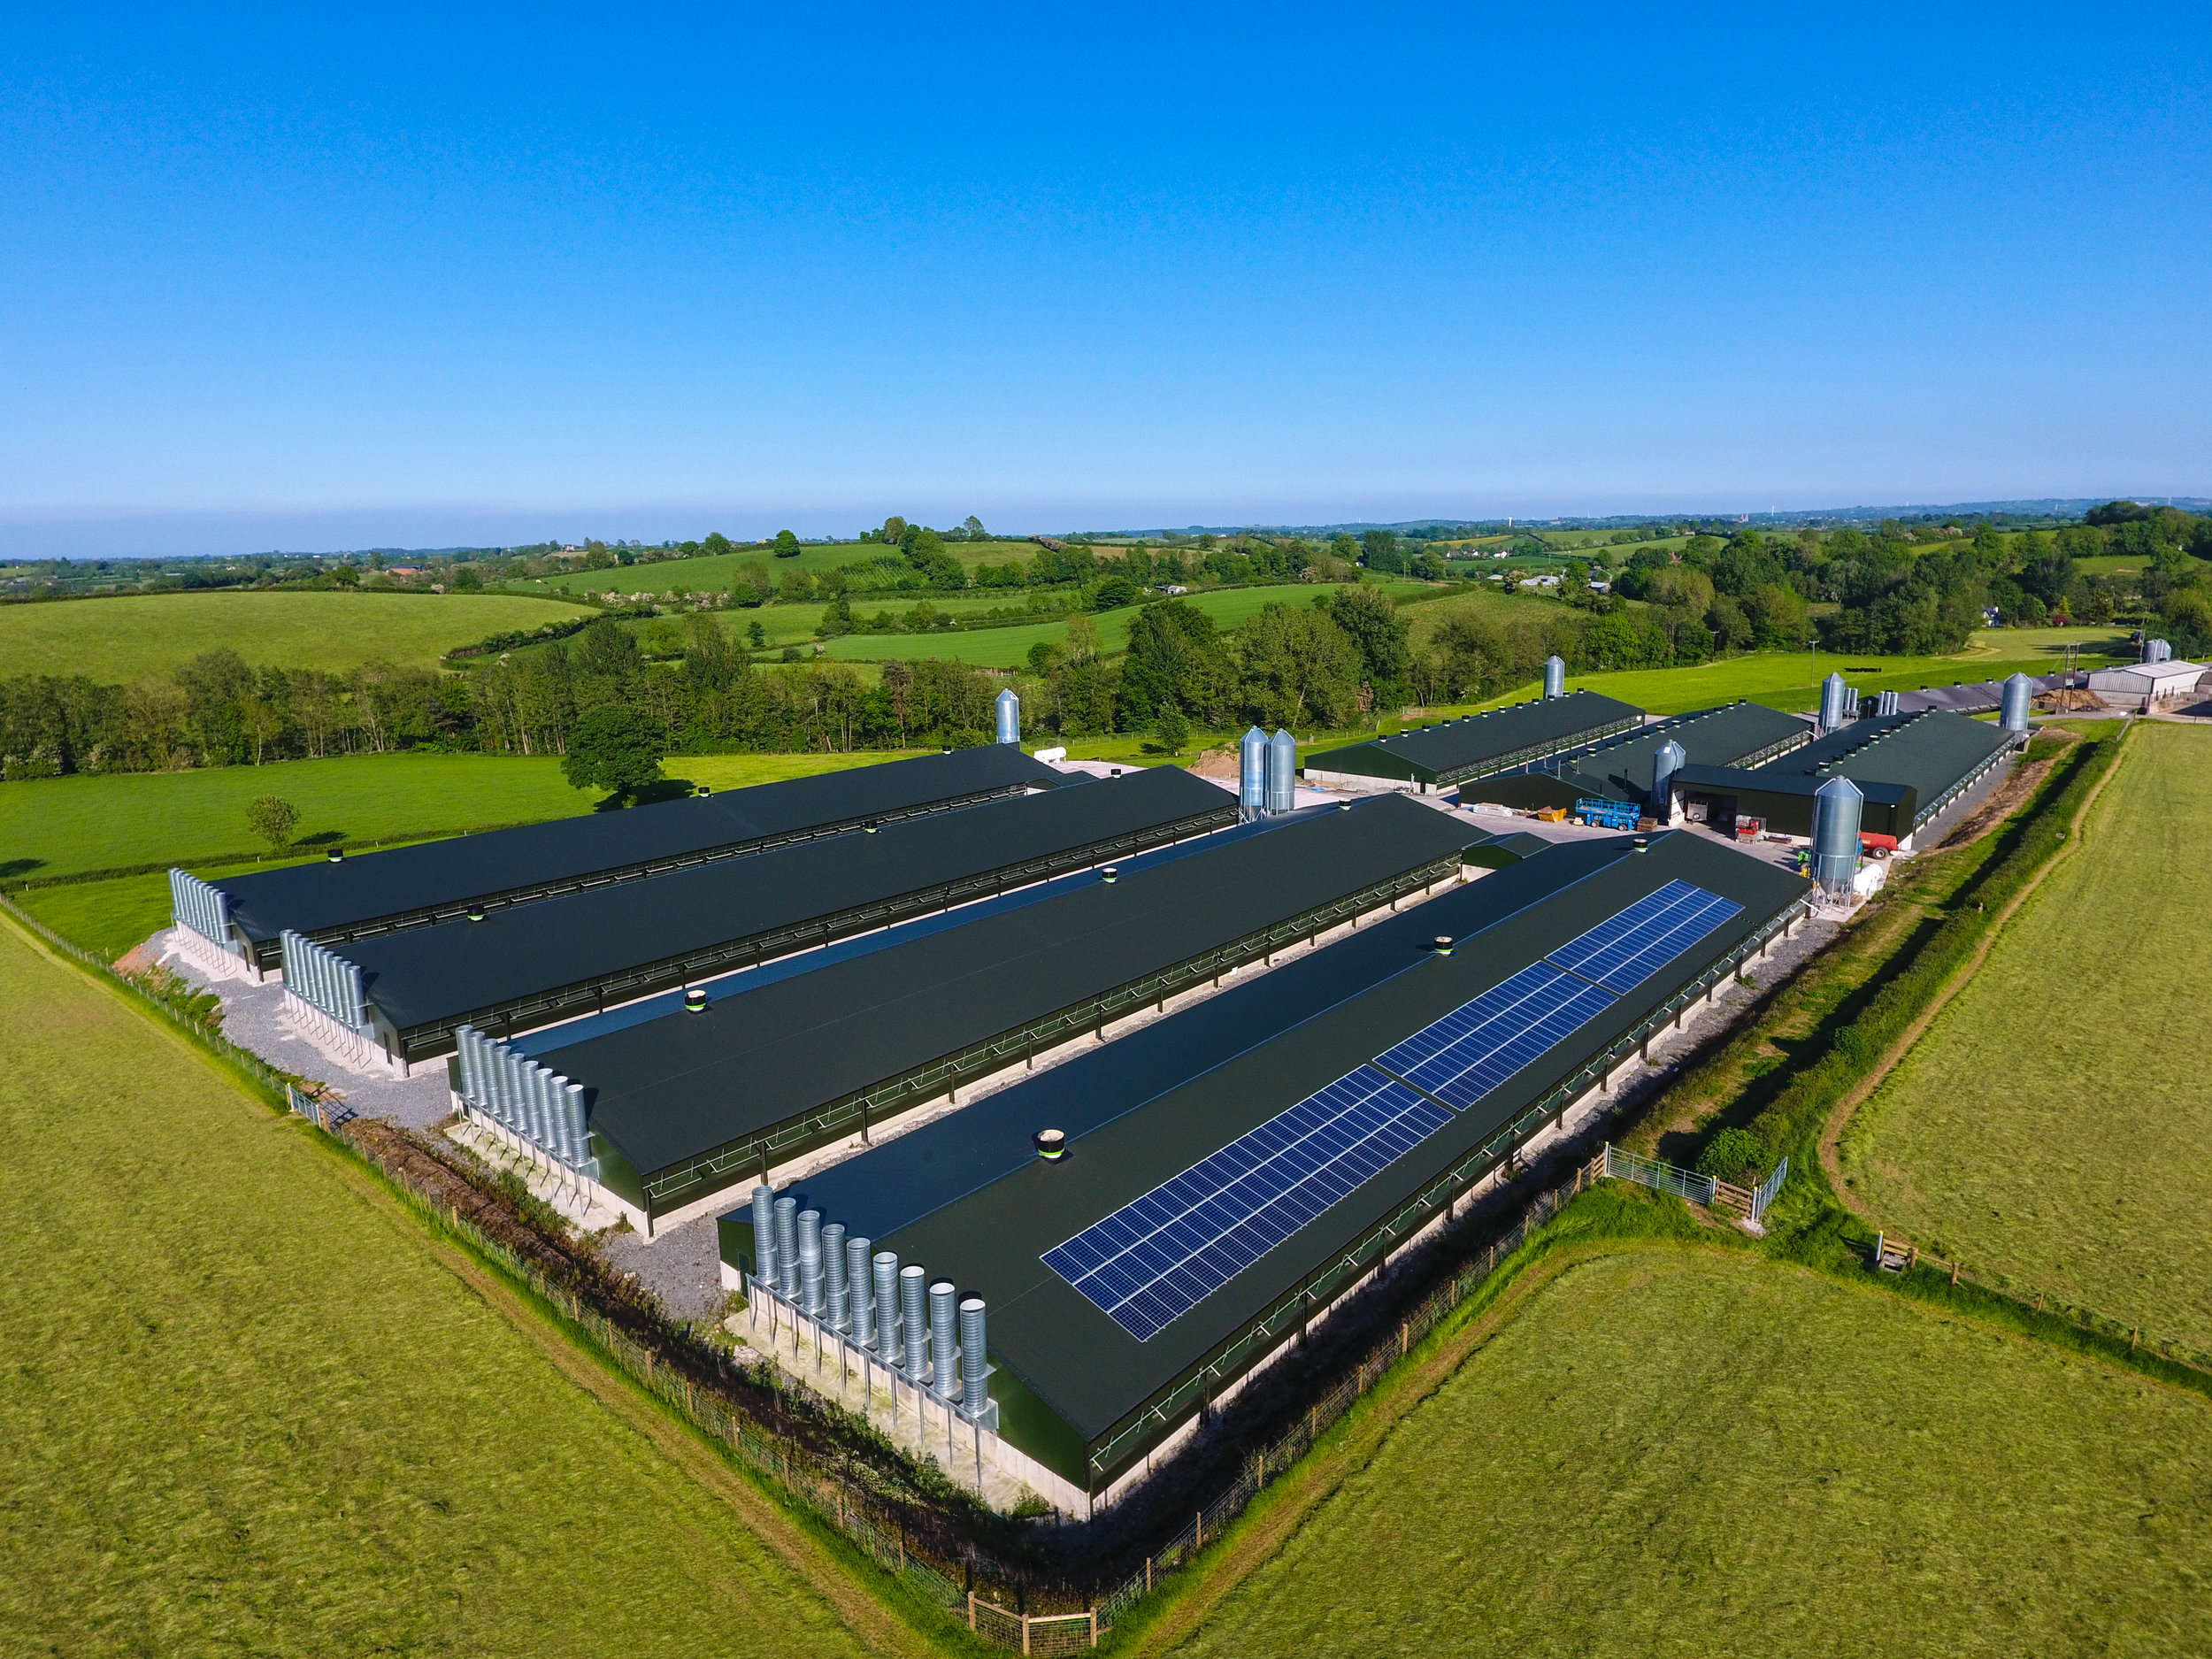 BROILER PROJECT   Northern Ireland  In 2017, JF McKenna finished work on this large 7-house broiler site in Northern Ireland.